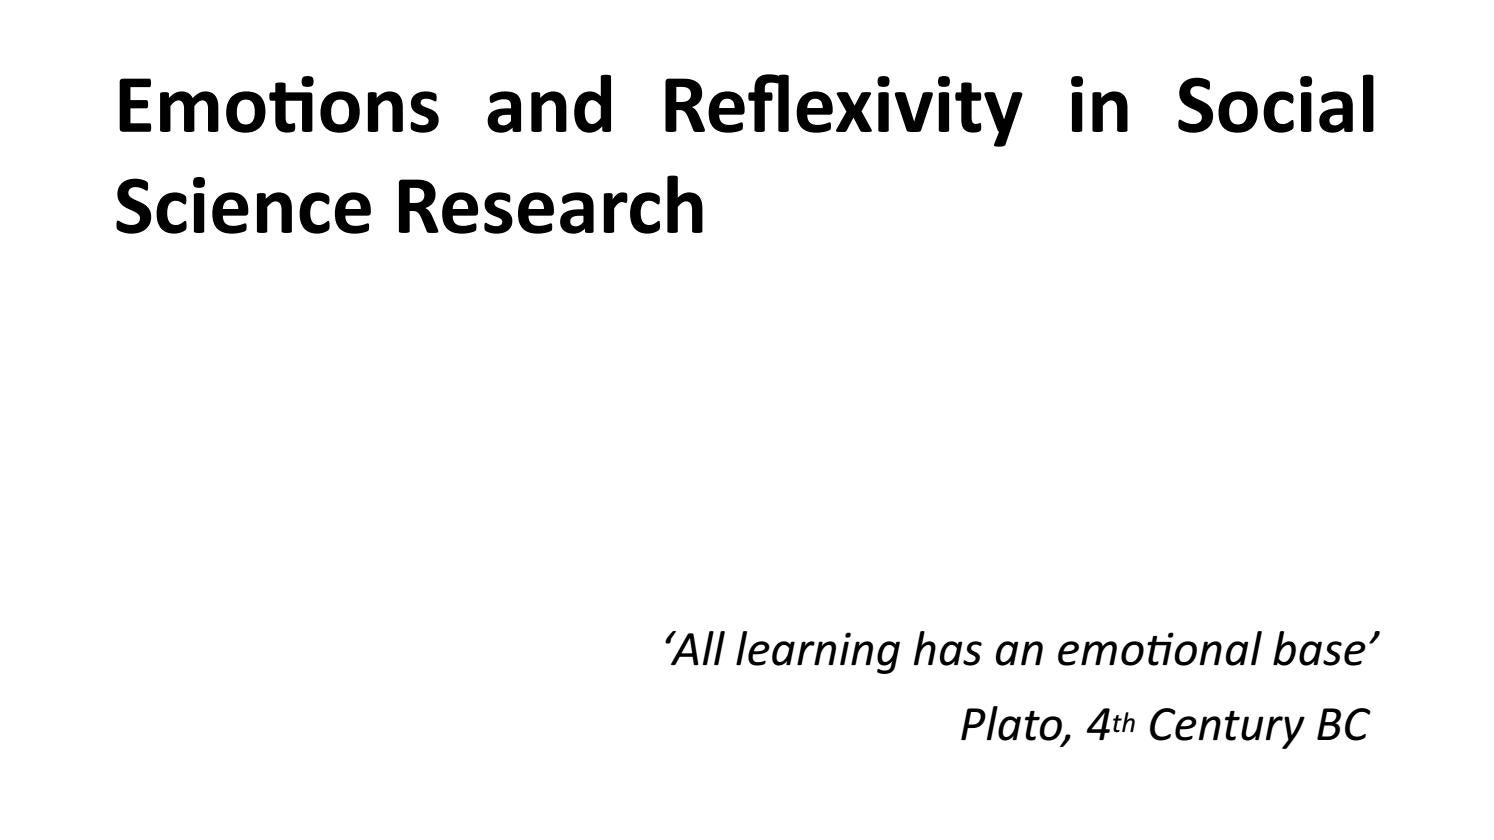 Emotions and Reflexivity in Social Science Research by